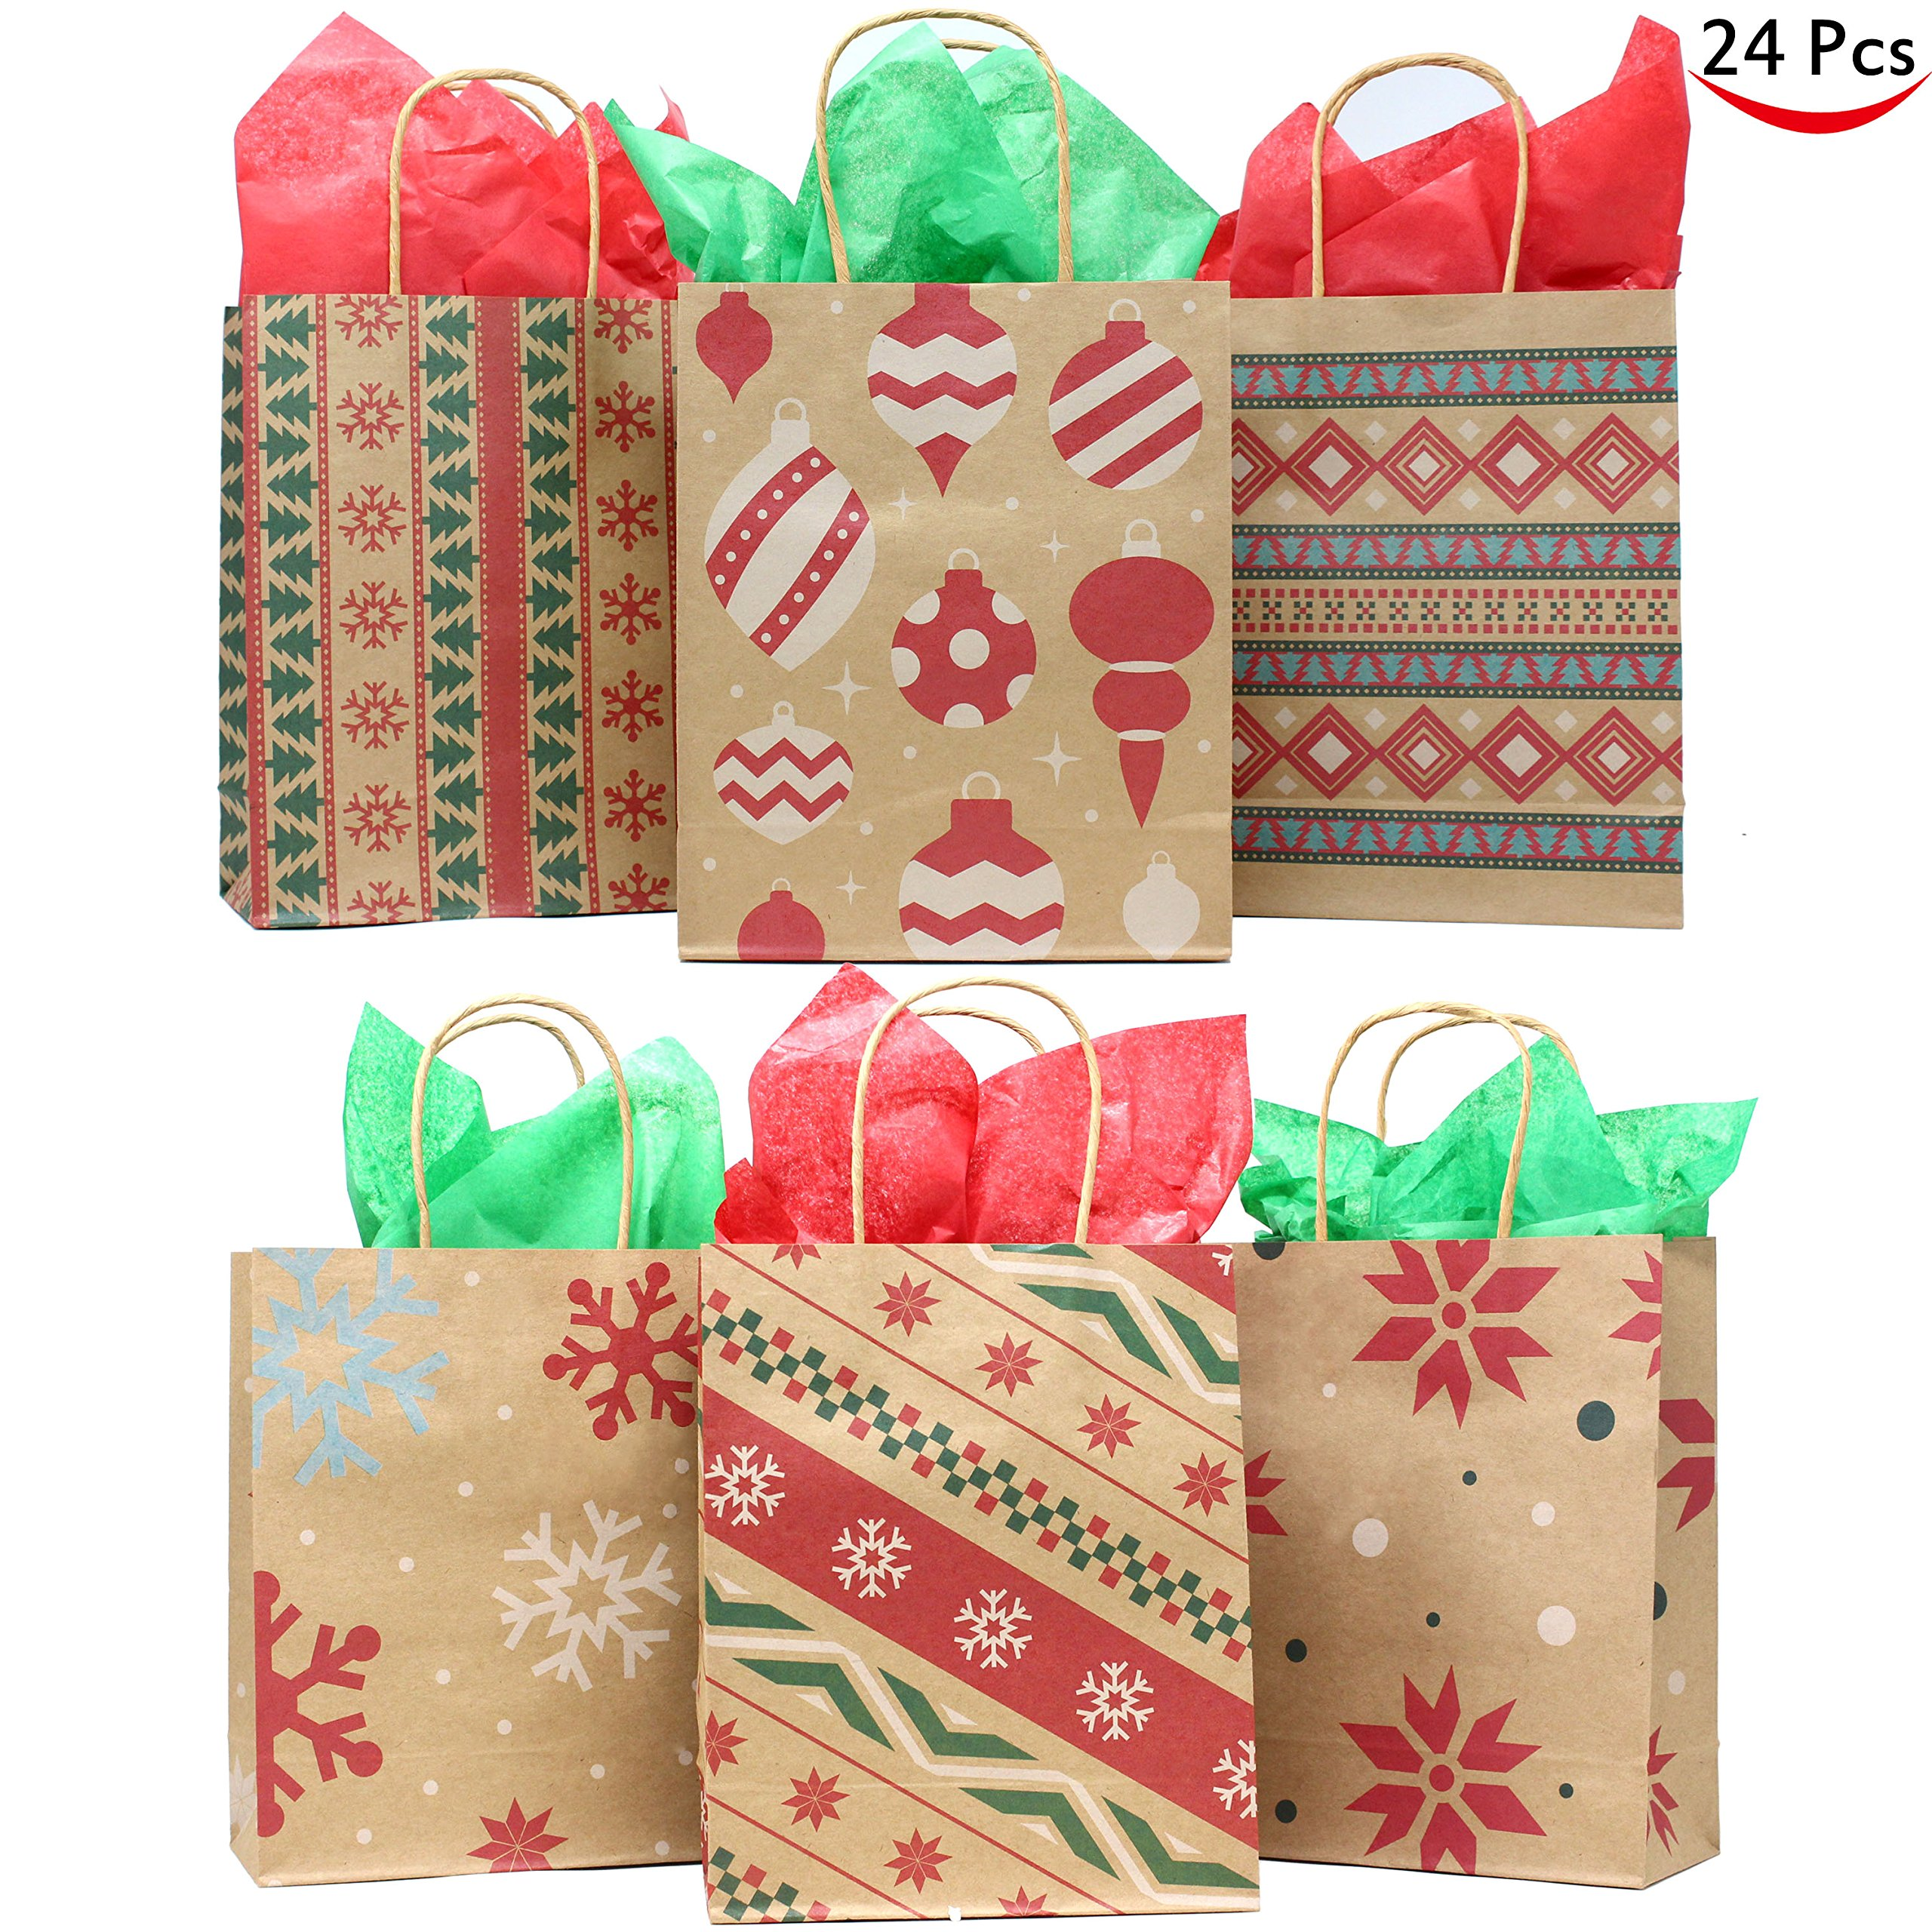 Joiedomi 24 Christmas Kraft Gift Bags with Assorted Christmas Prints for Kraft Holiday Paper Gift Bags, Christmas Goody Bags, Xmas Gift Bags, Classrooms and Party Favors by